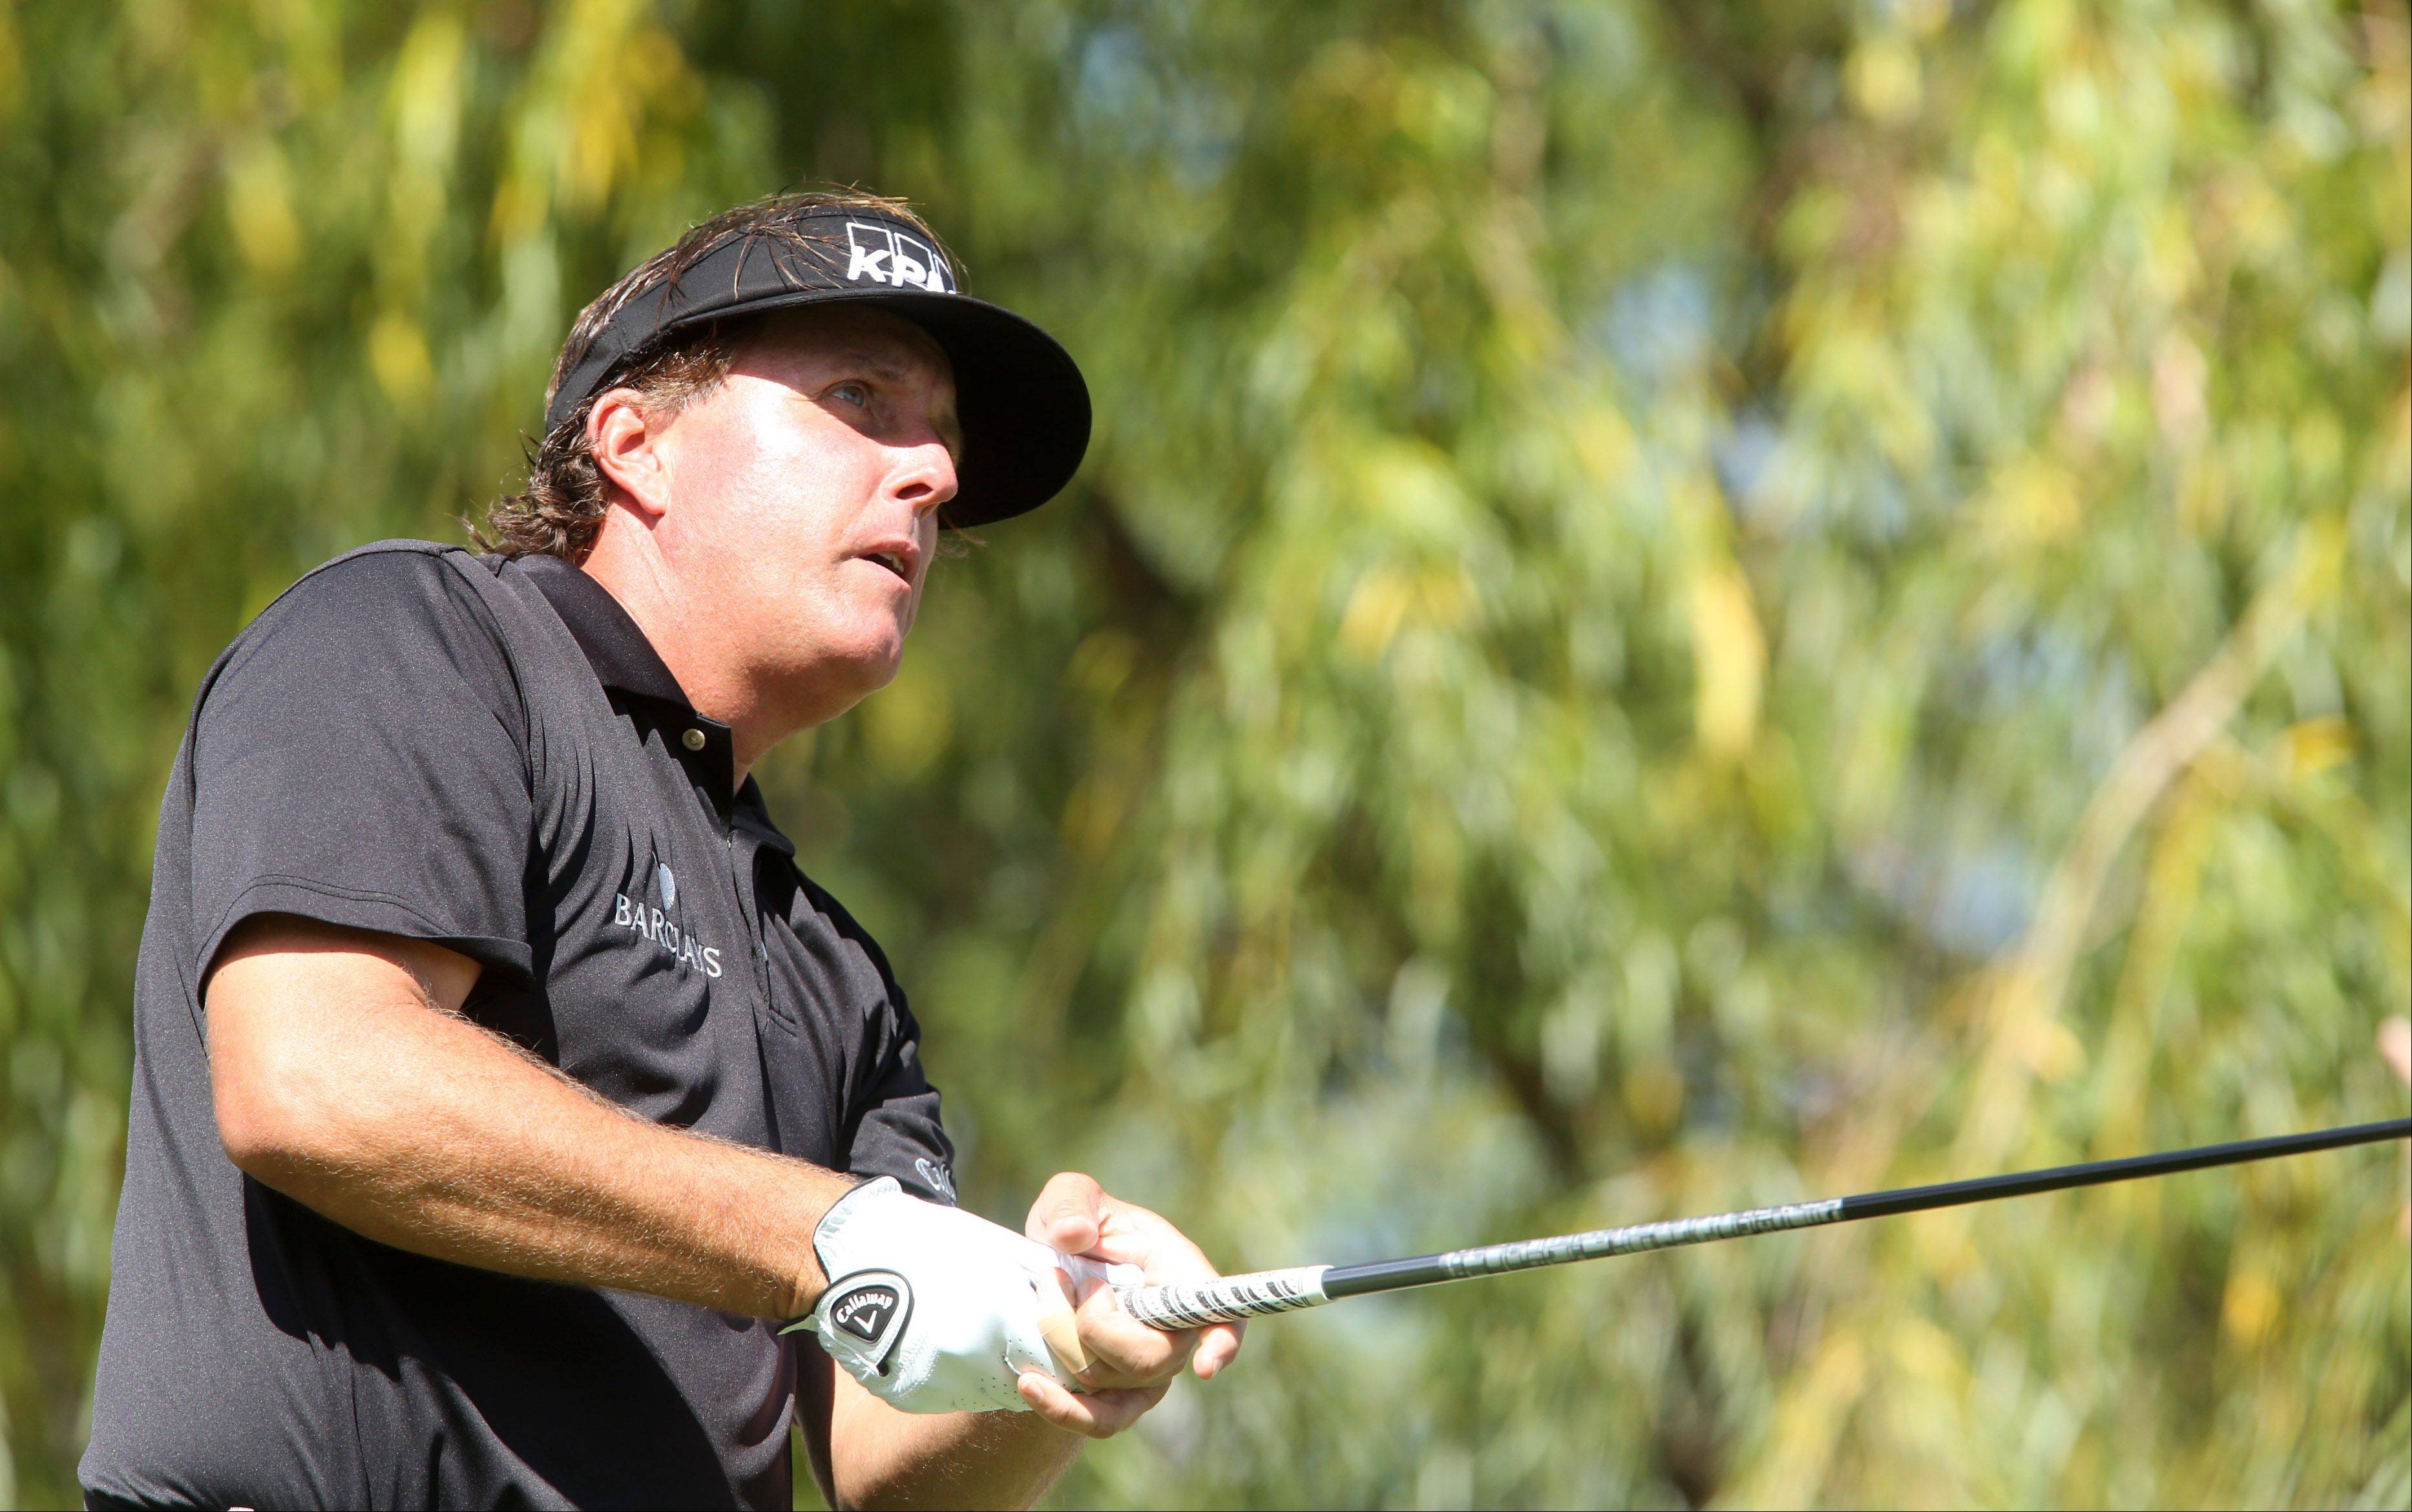 Phil Mickelson tees off on the 4th hole.